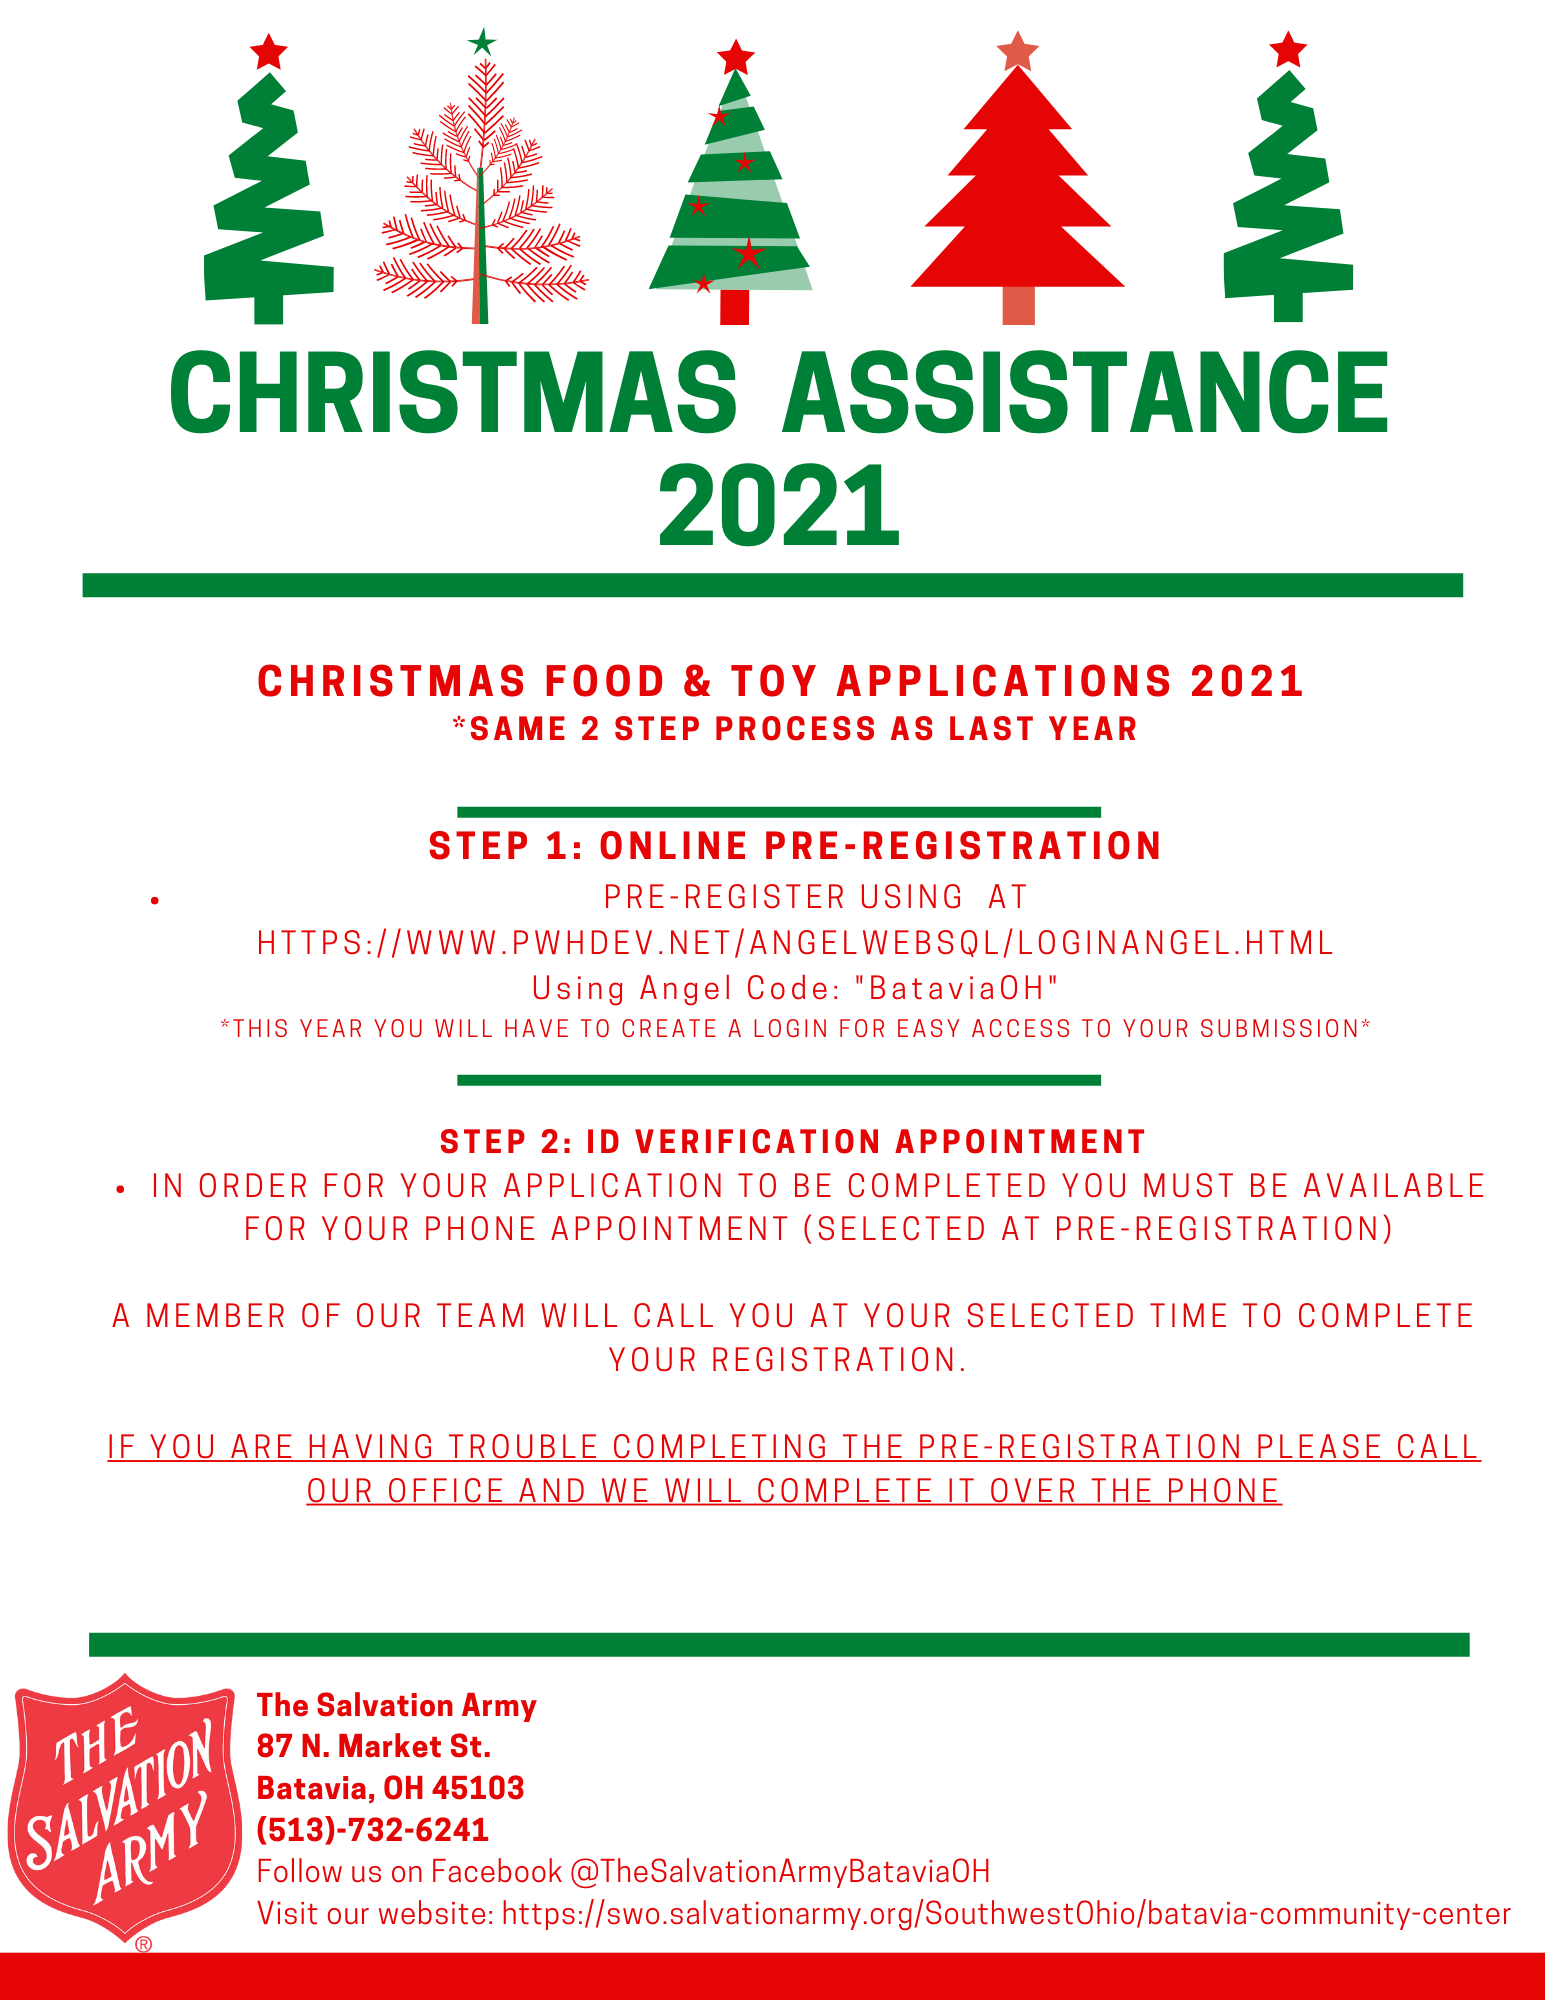 Please call the Salvation Army at 513-732-6241 if you are in need to Christmas Assistance